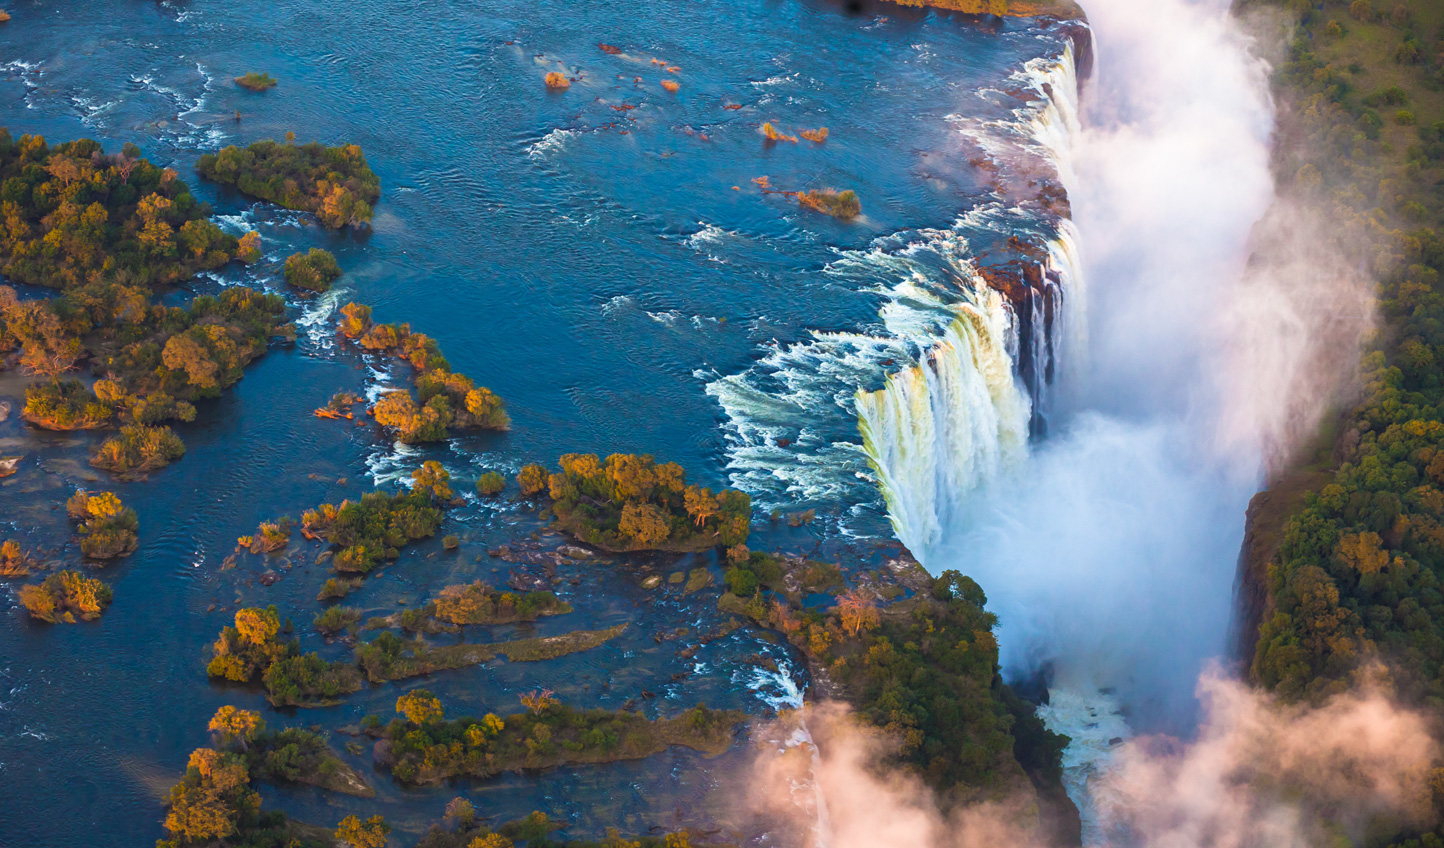 Take an exhilarating helicopter ride over Victoria Falls